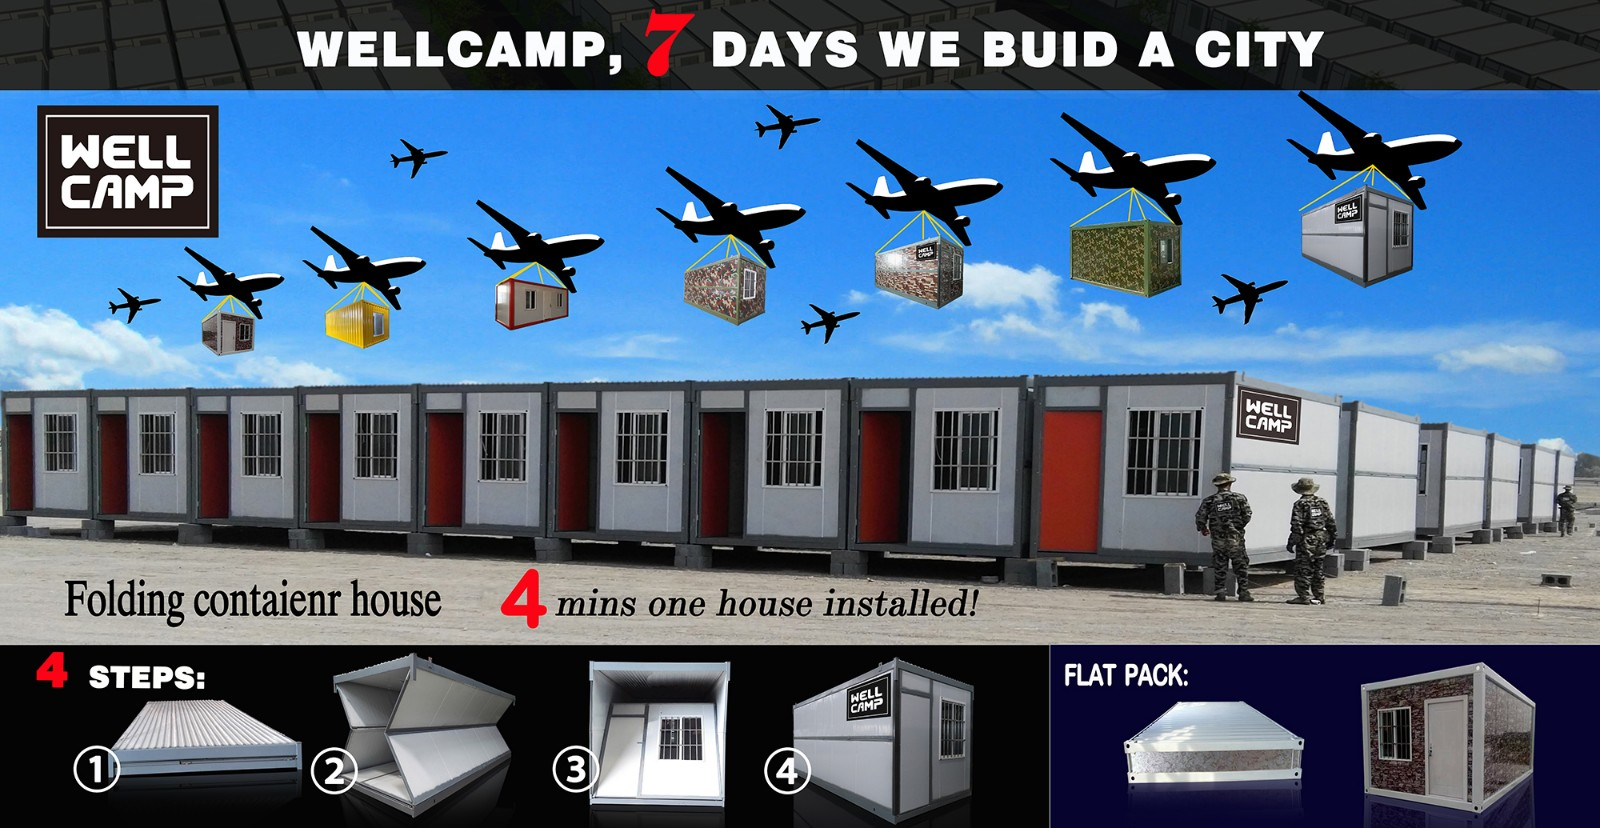 product-Easy Move Folding Container House Low Cost Wellcamp F-8-WELLCAMP, WELLCAMP prefab house, WEL